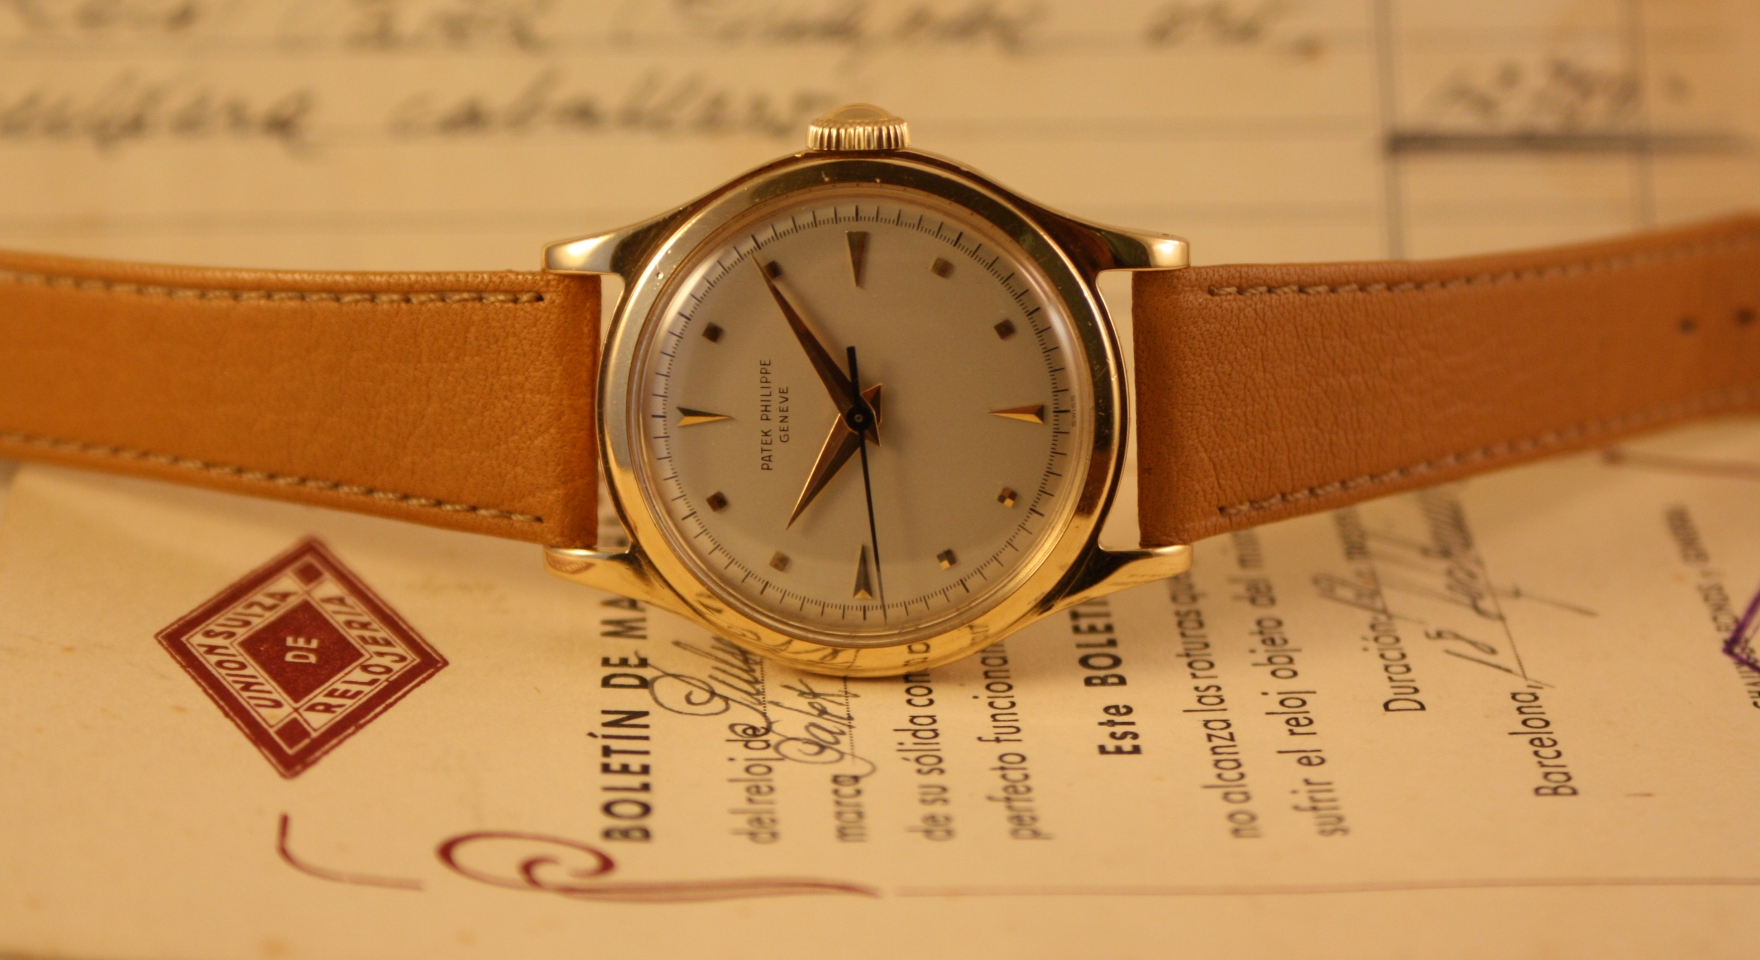 Patek Philippe gold dress watches